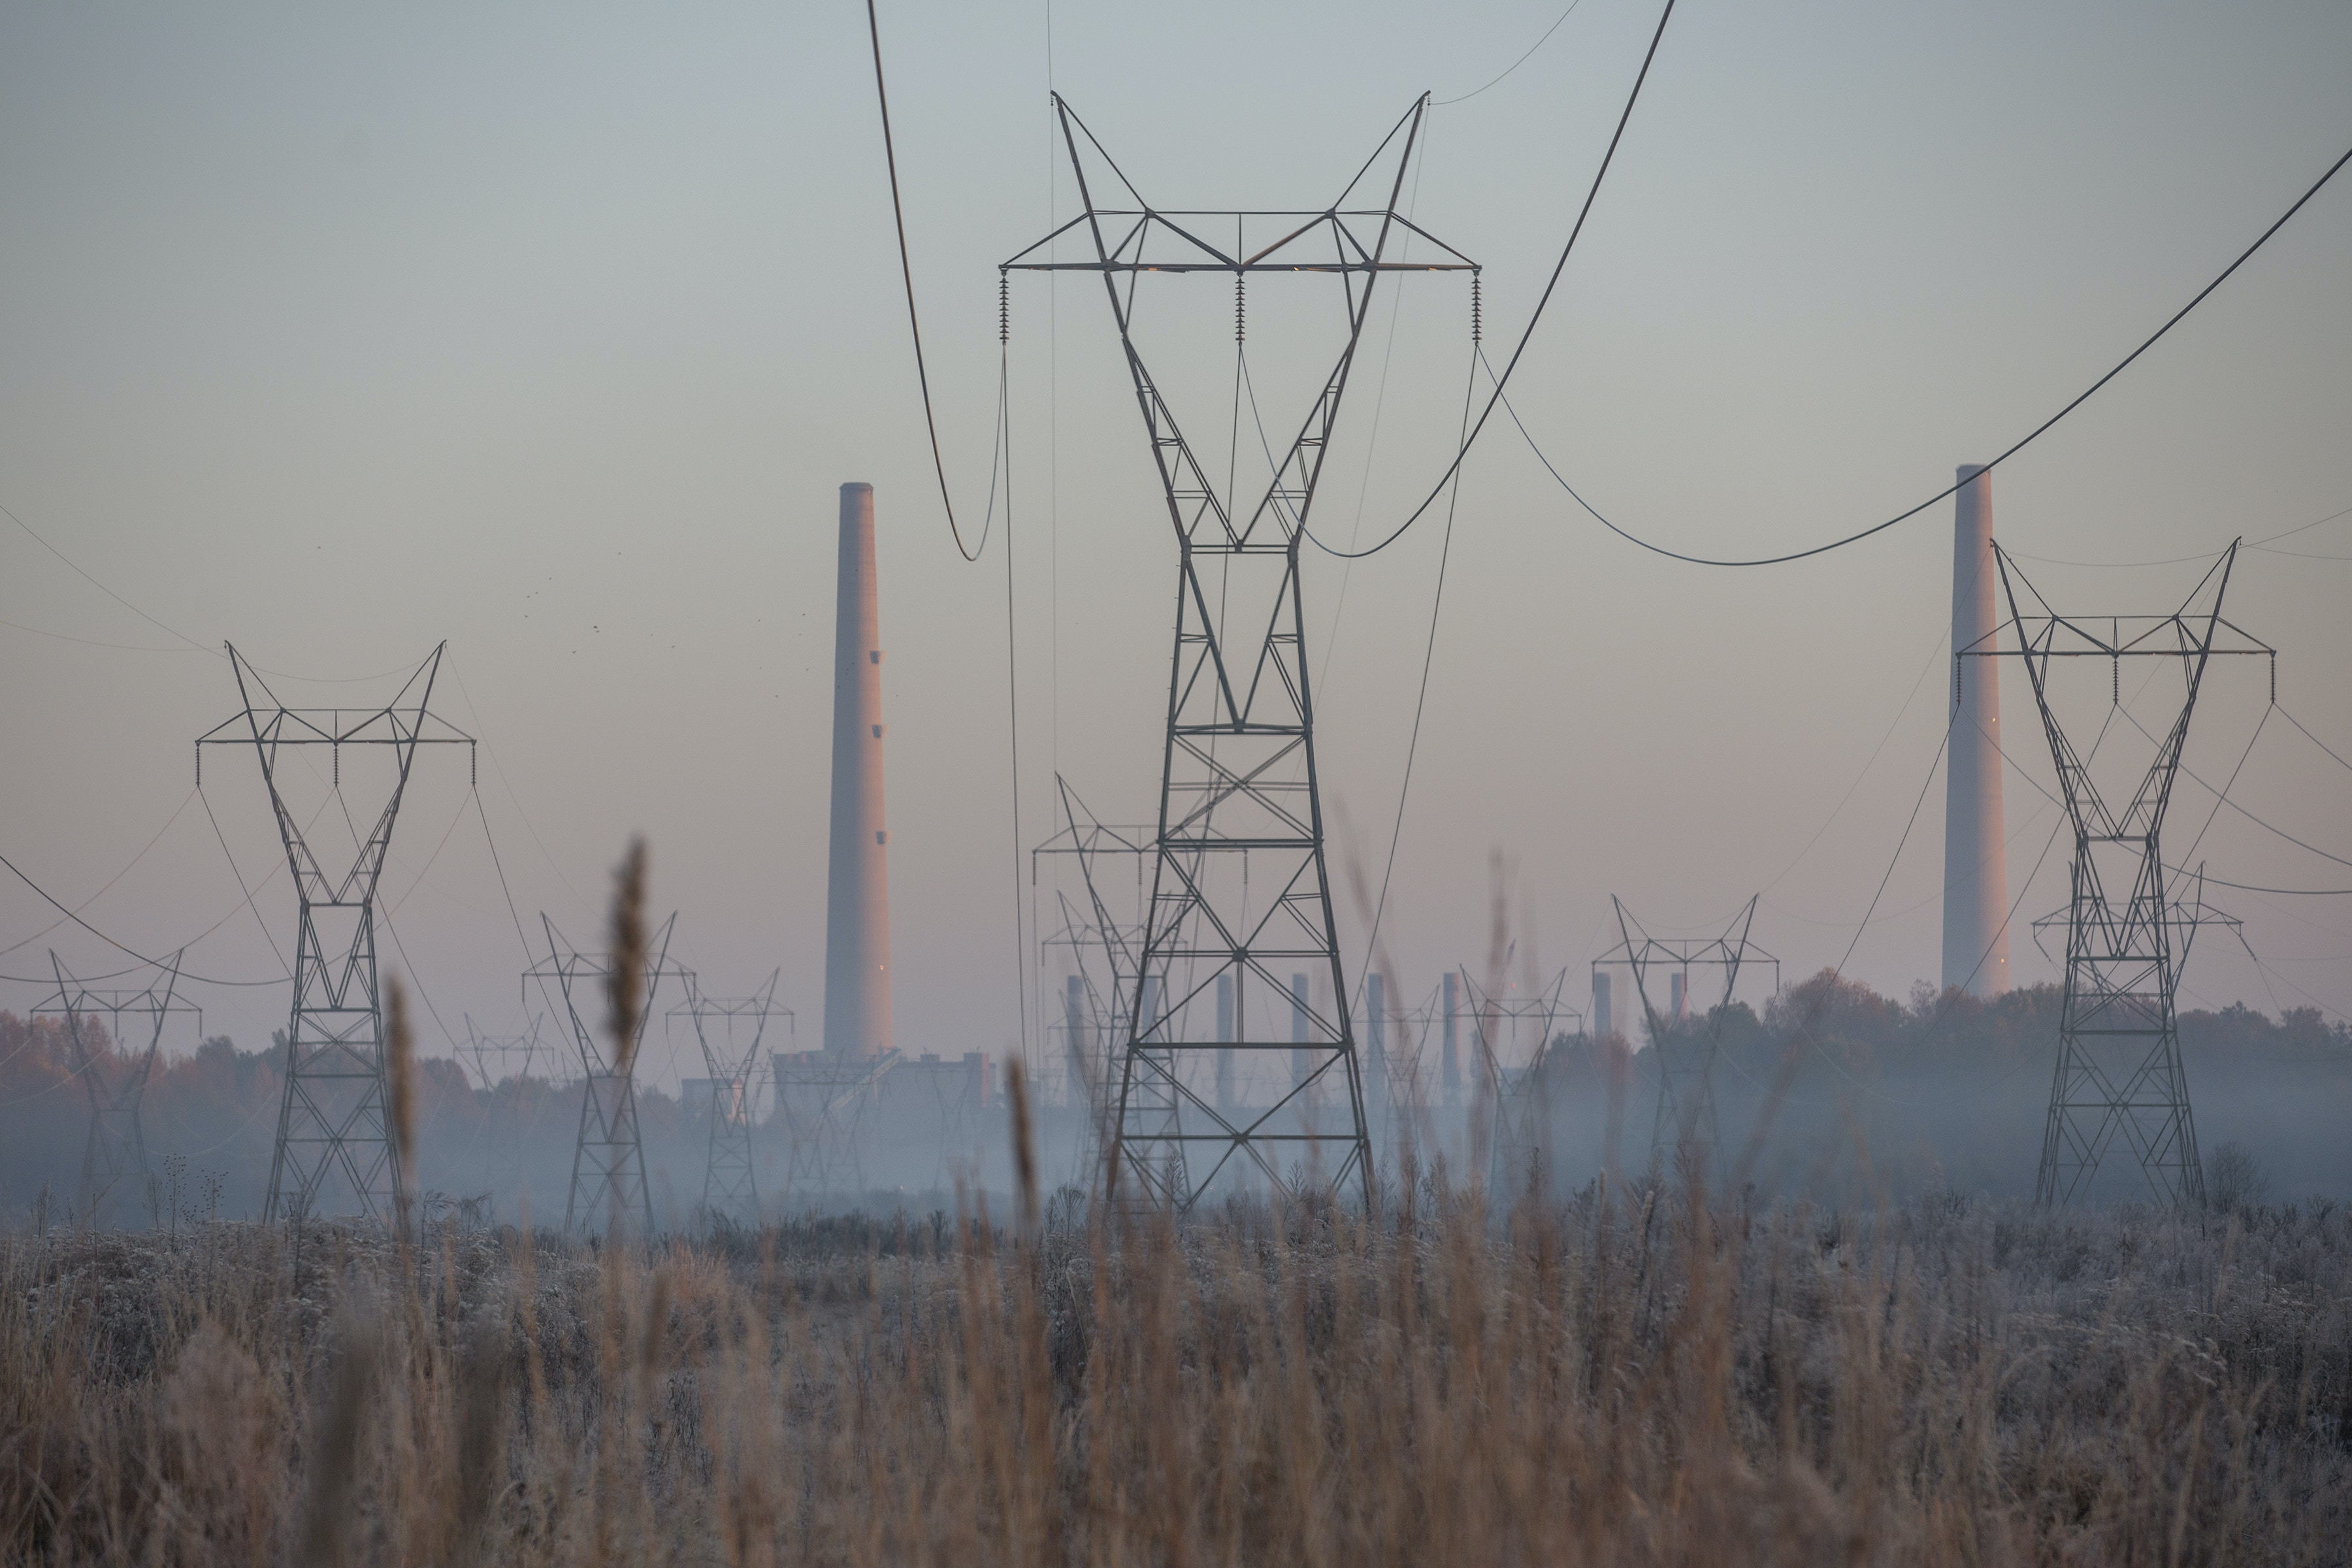 Transmission lines and Cooling towers at the TVA Shawnee Power Plant in West Paducah, Ky., are illuminated by the rising sun on Tuesday, Nov. 14, 2017. (Ryan Hermens/The Paducah Sun via AP)